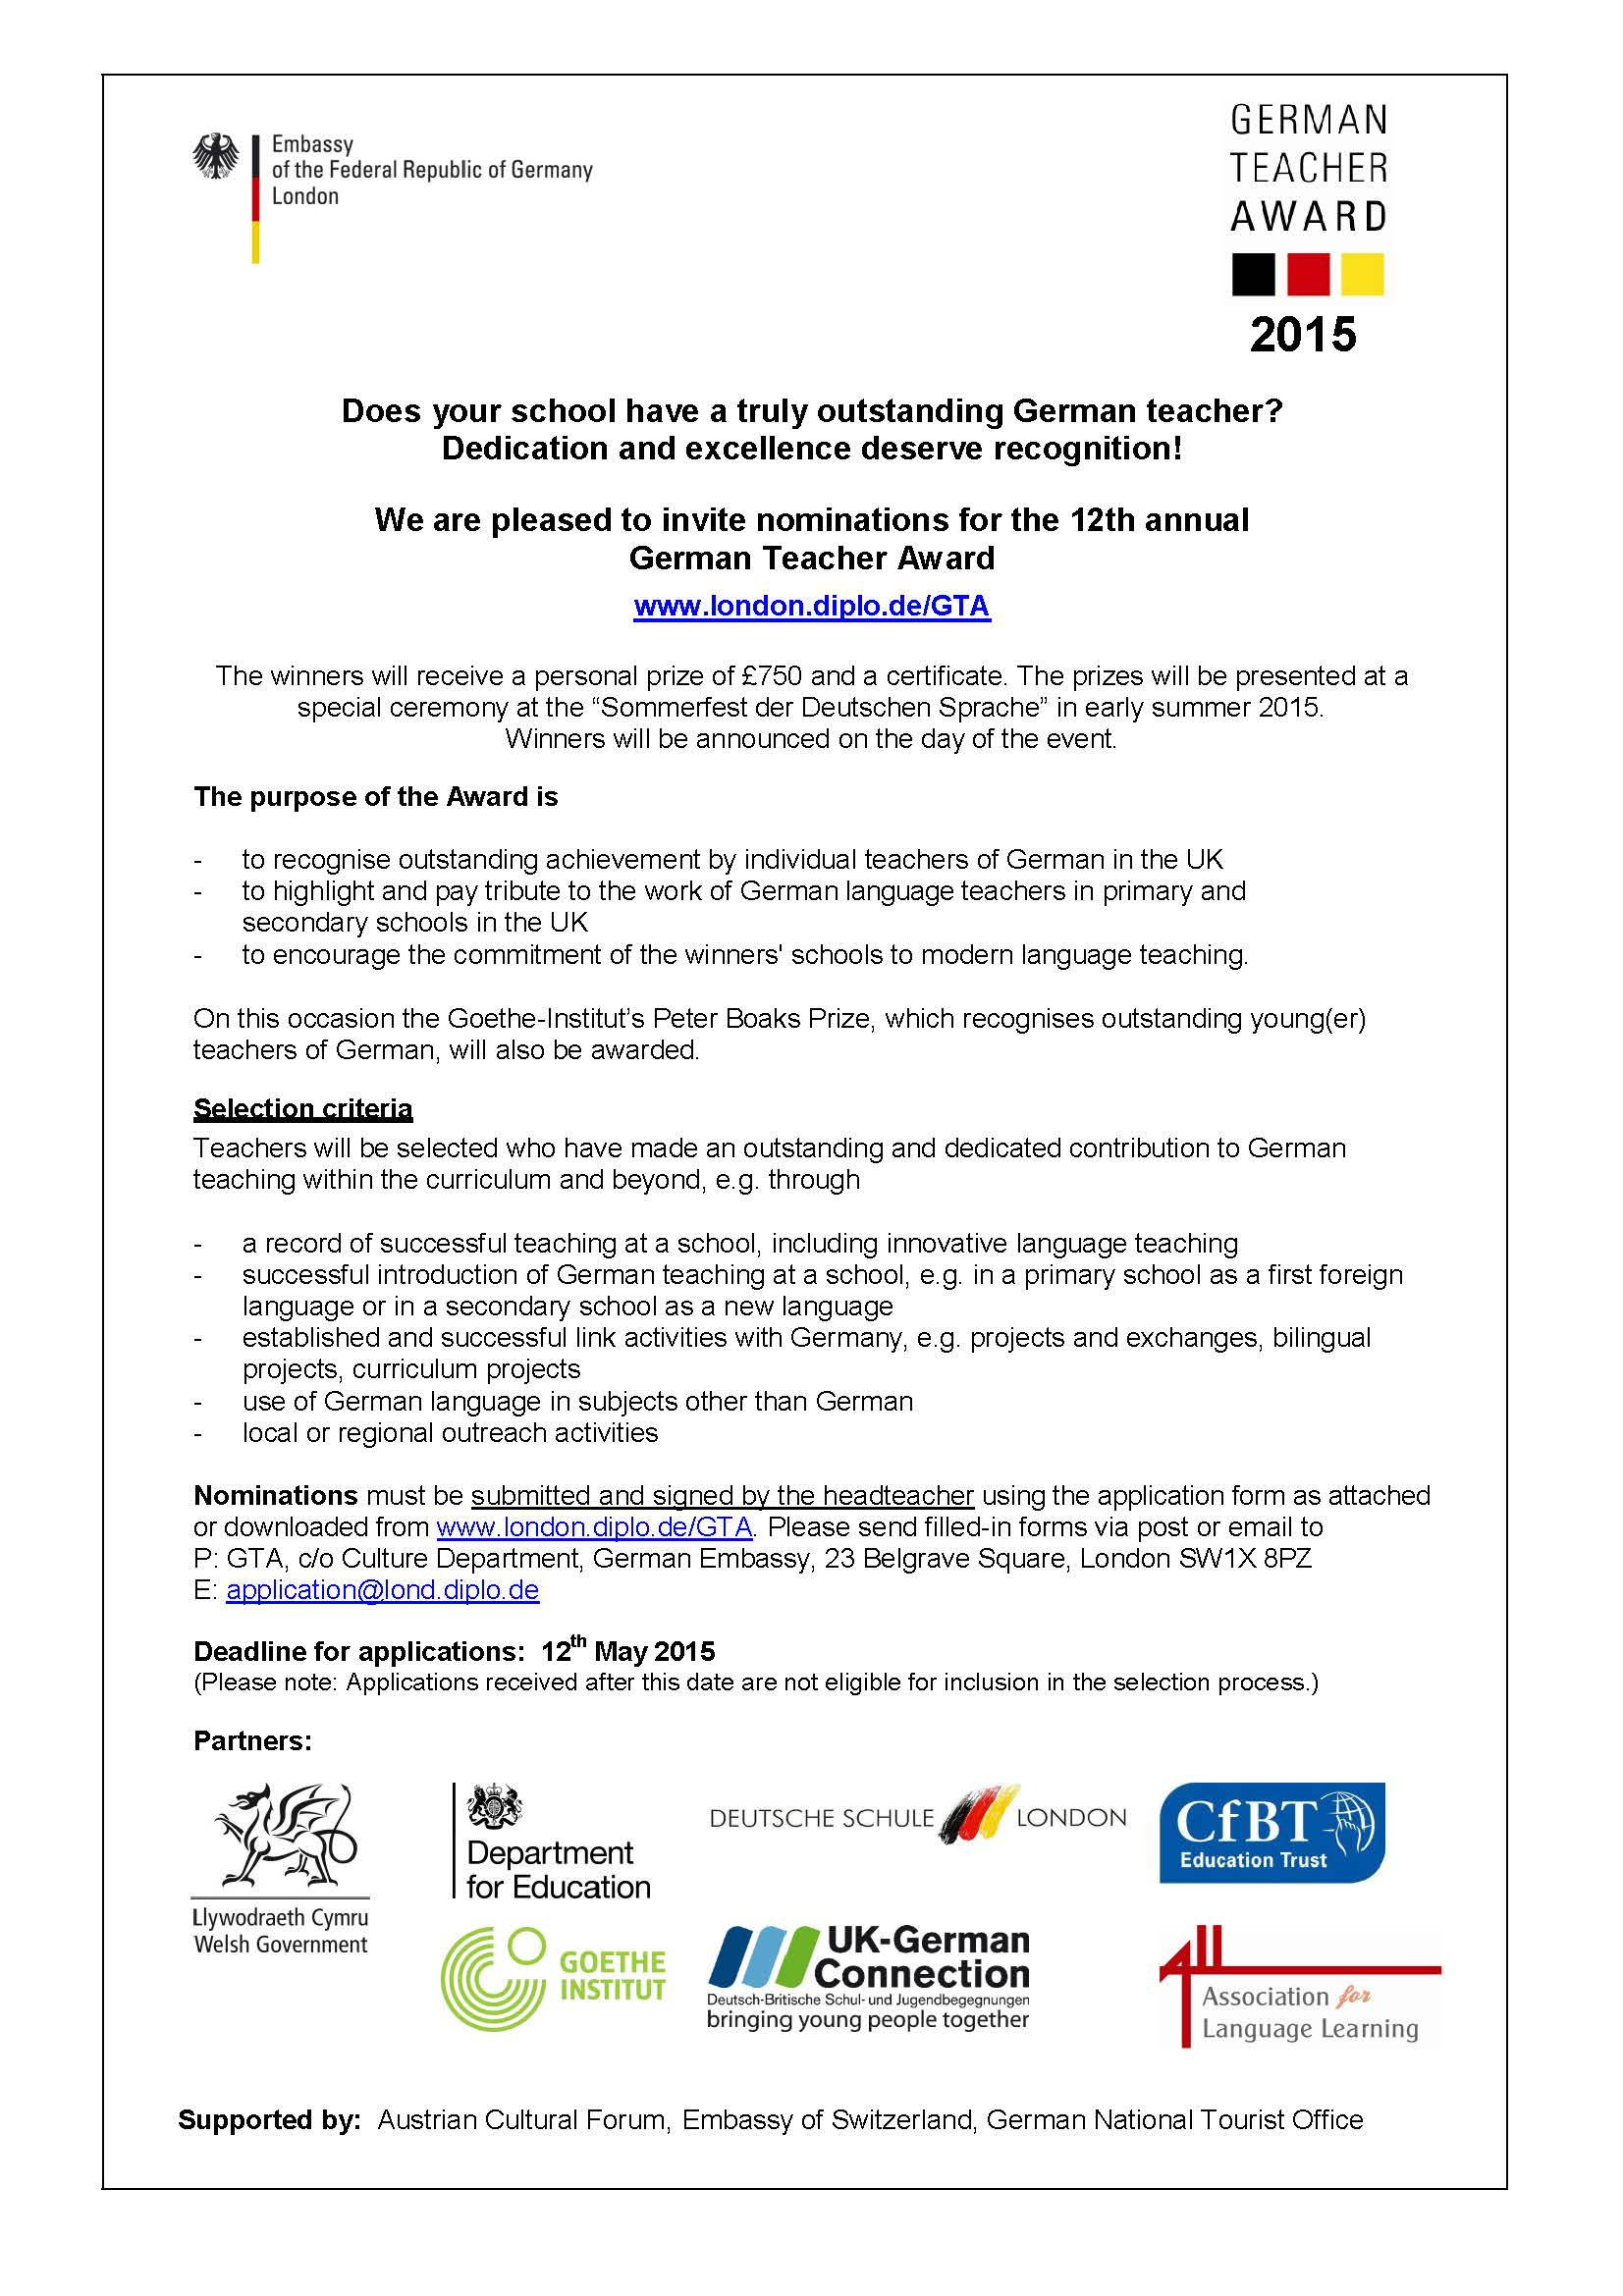 German Teacher Award 2015 call for submissions PDF